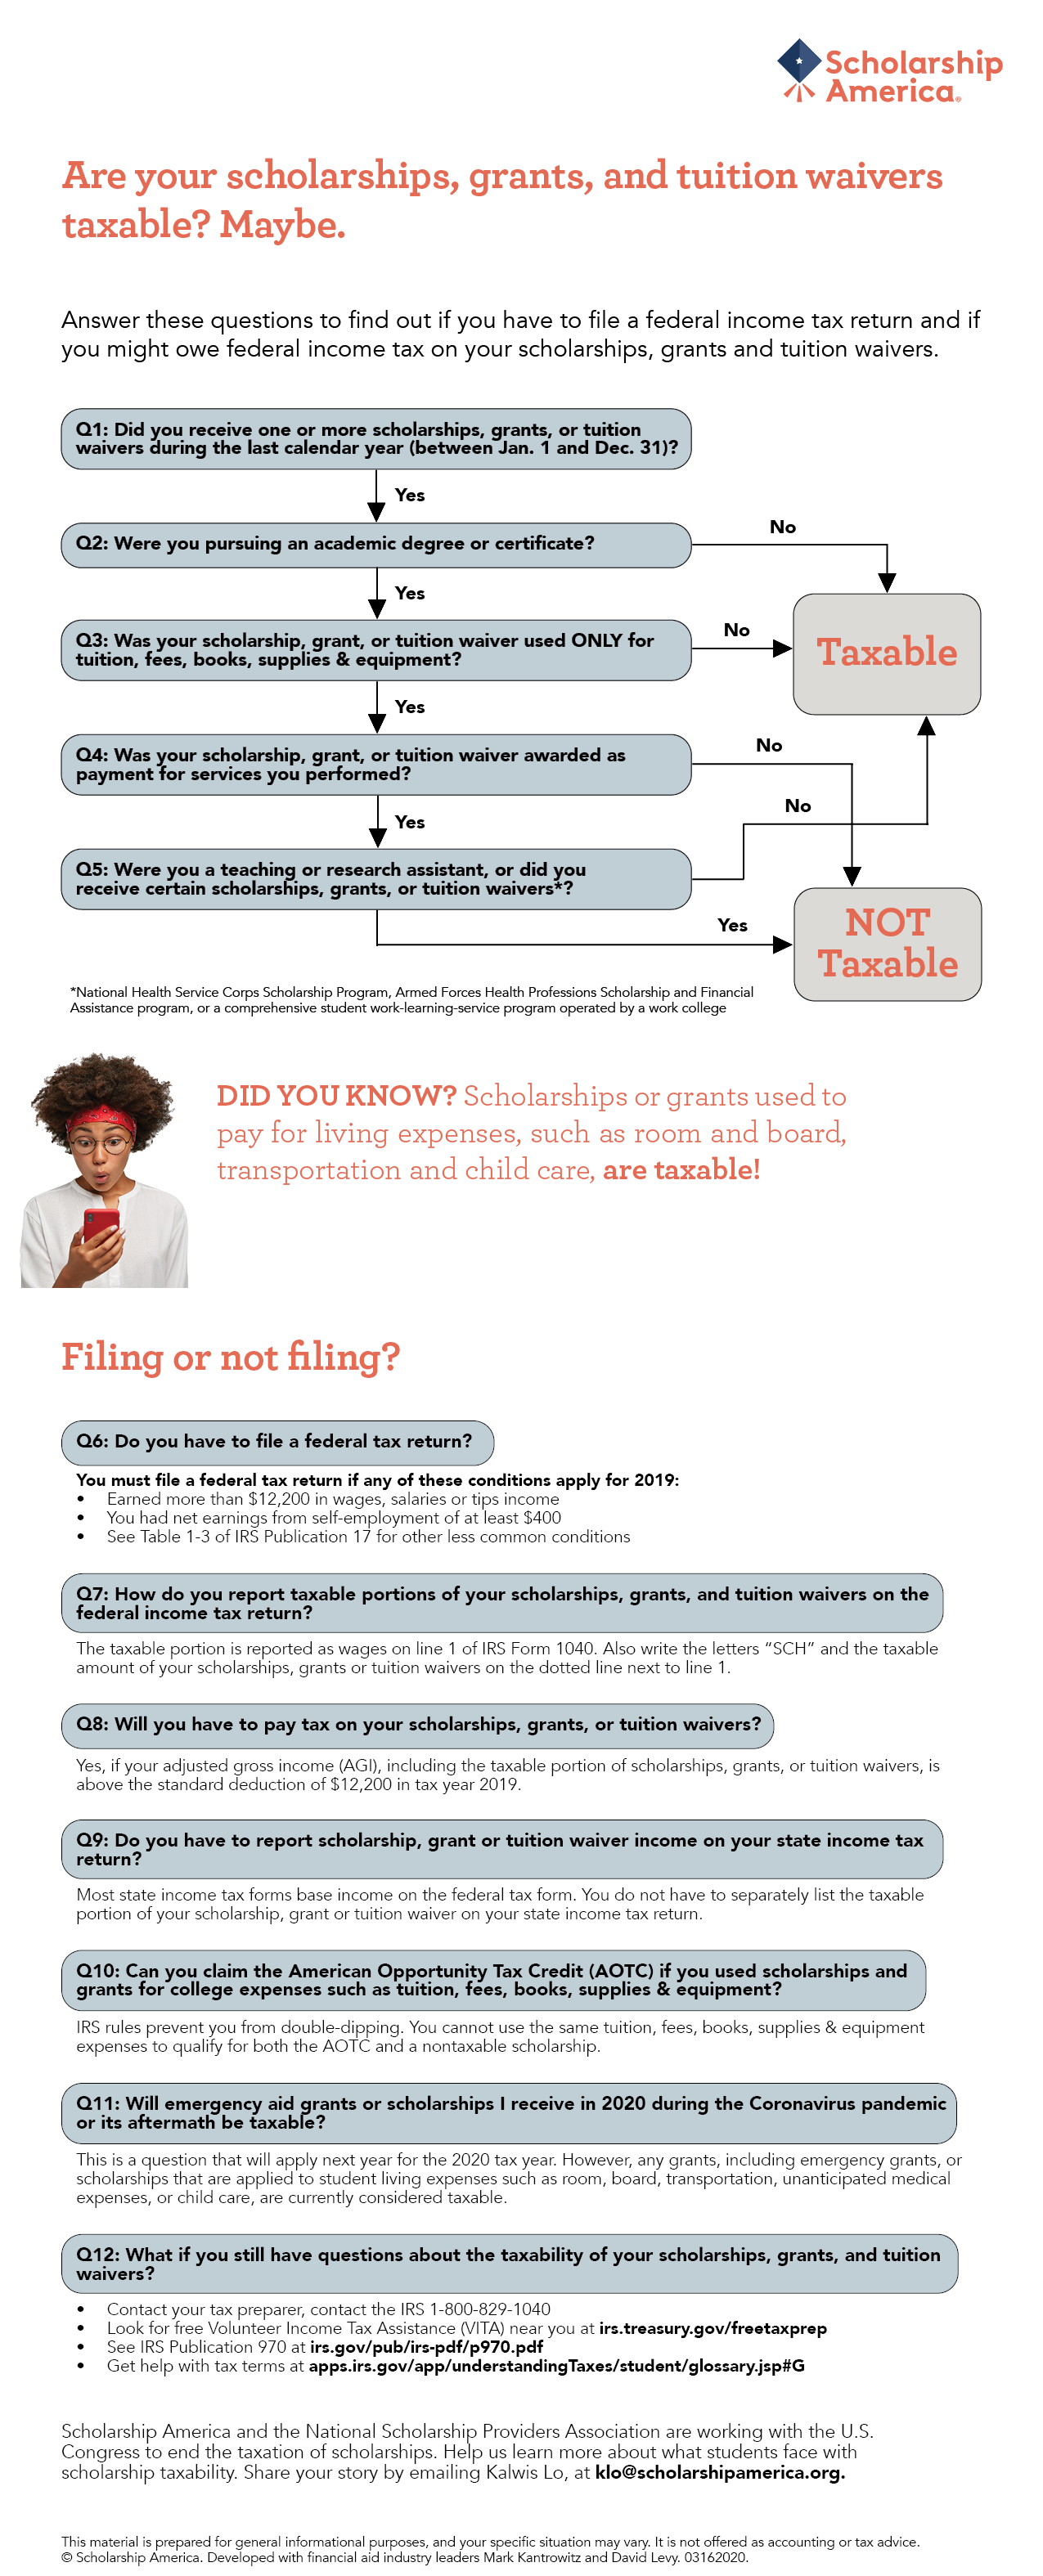 Are your scholarships, grants, and tuition waivers taxable? Maybe. Answer questions to find out if you have to file a federal income tax return and if you might owe federal income tax on your scholarships, grants and tuition waivers.